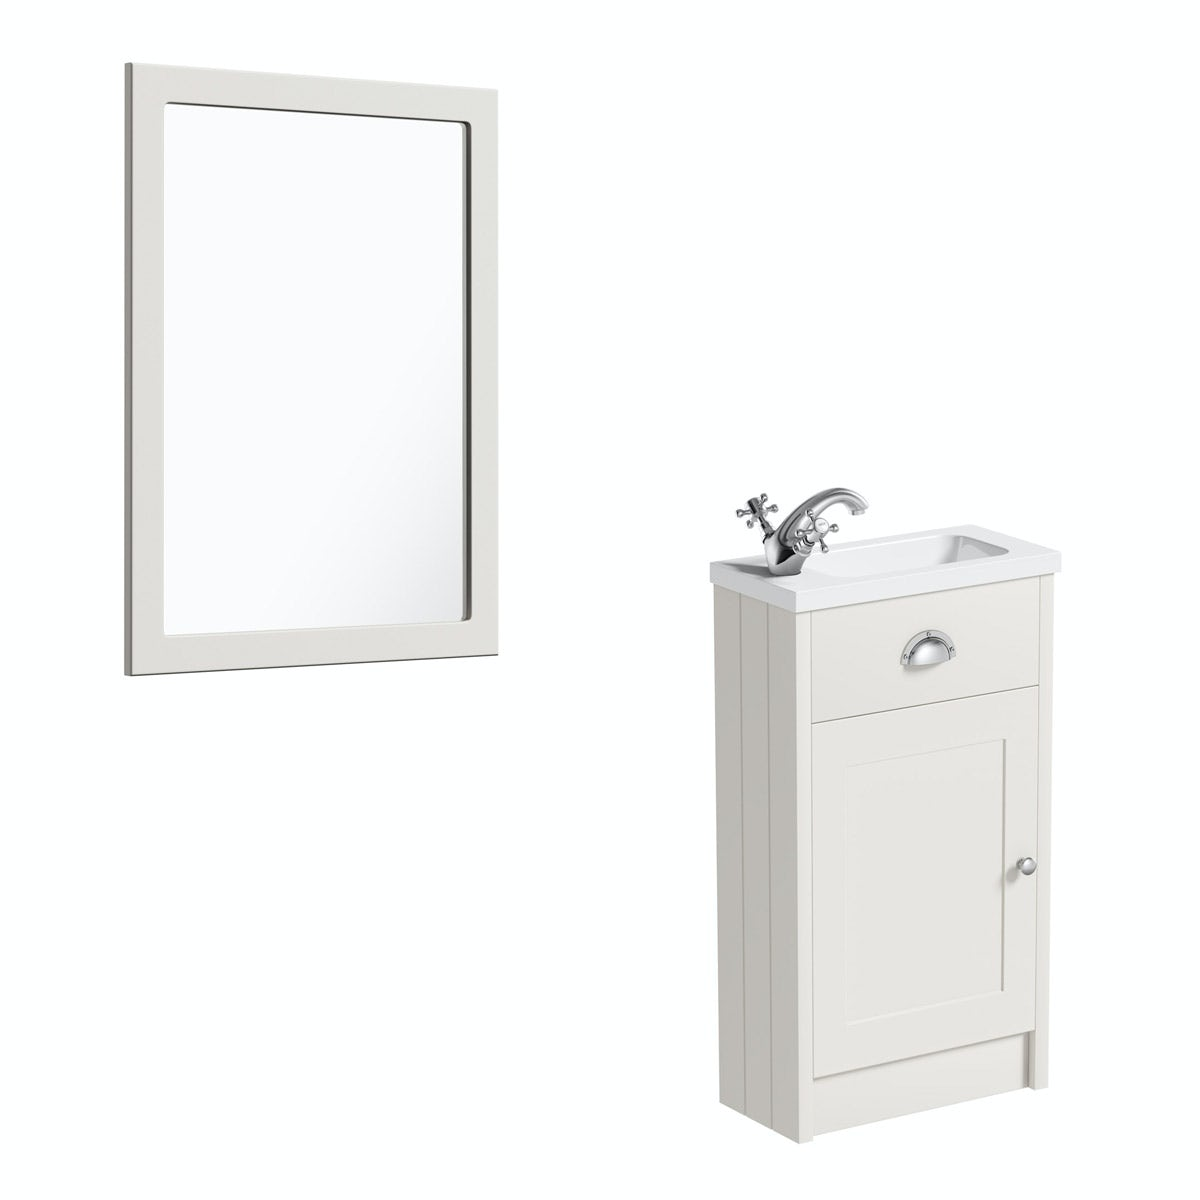 The Bath Co. Dulwich stone ivory cloakroom vanity unit and mirror 600mm